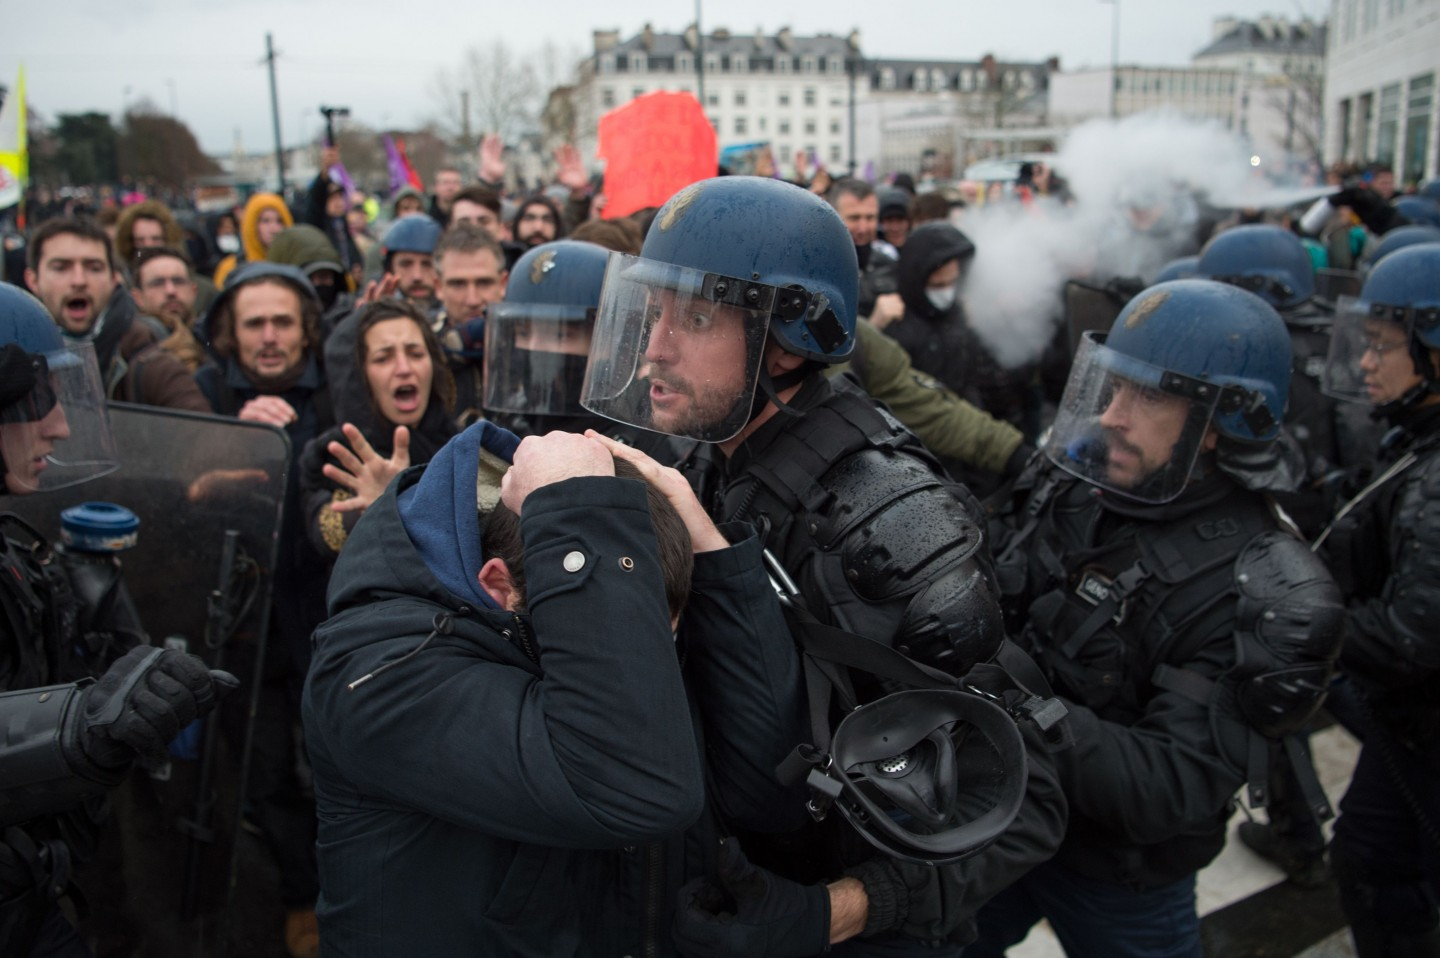 People take part in a demonstration in Nantes on December 17, 2019 to protest against the French government's plan to overhaul the country's retirement system, as part of a national general strike. (Photo by Loic Venance/AFP)